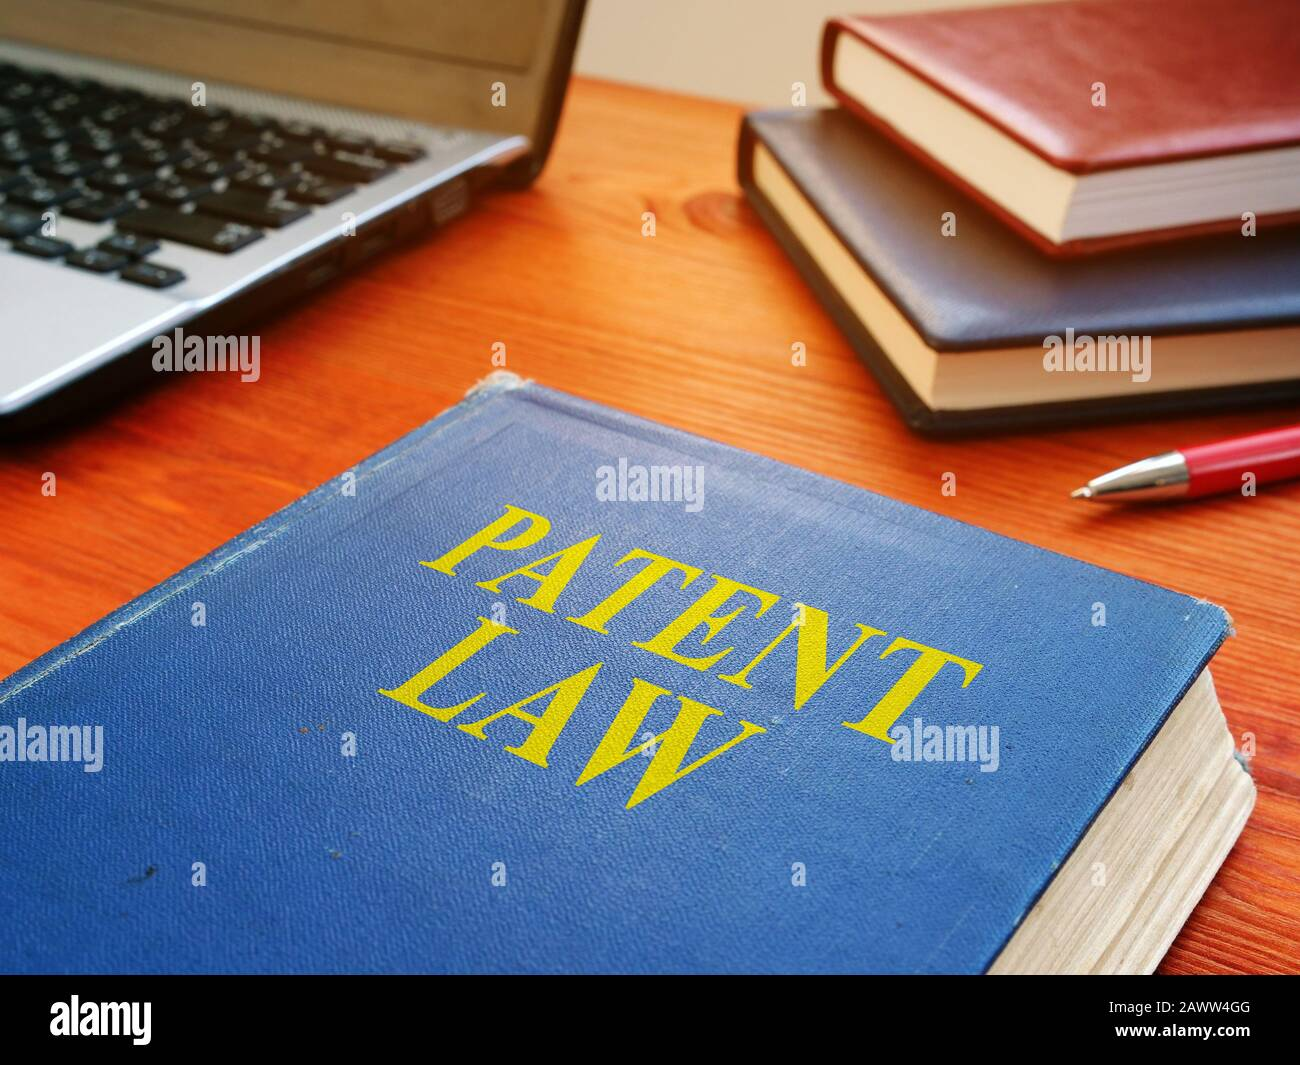 Patent law book about intellectual property on the desk. Stock Photo